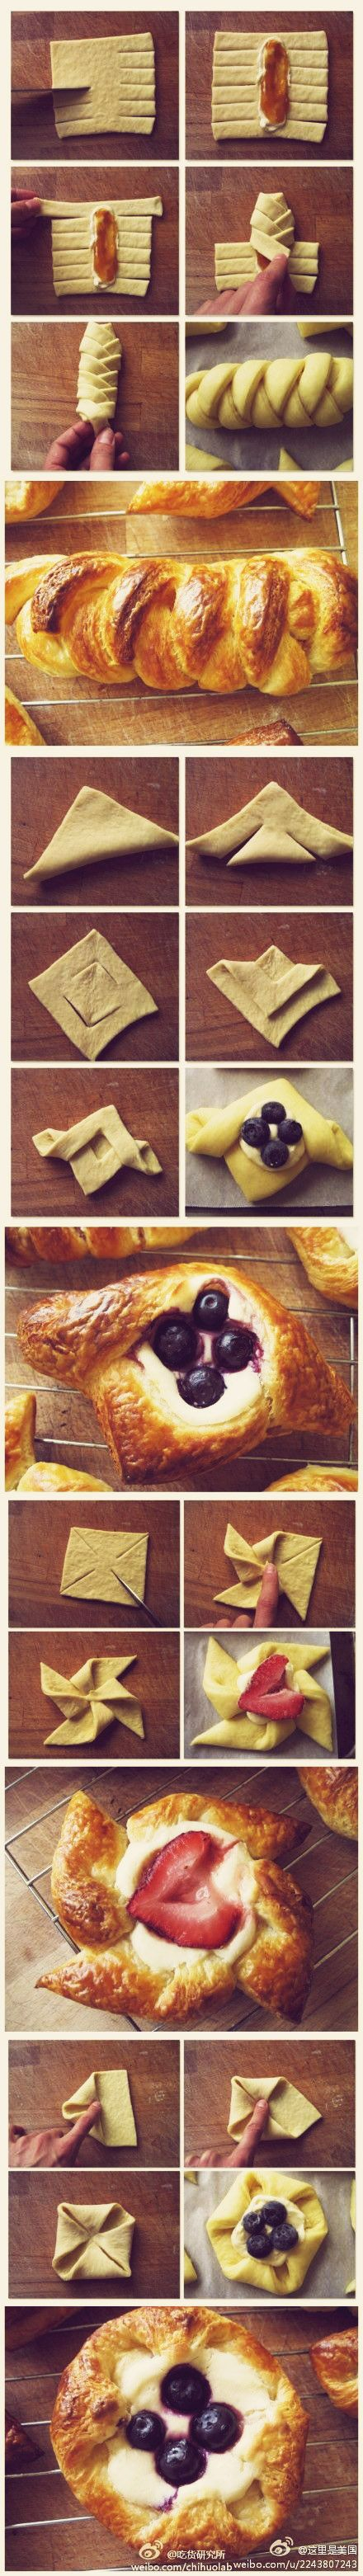 Make with puff pastry